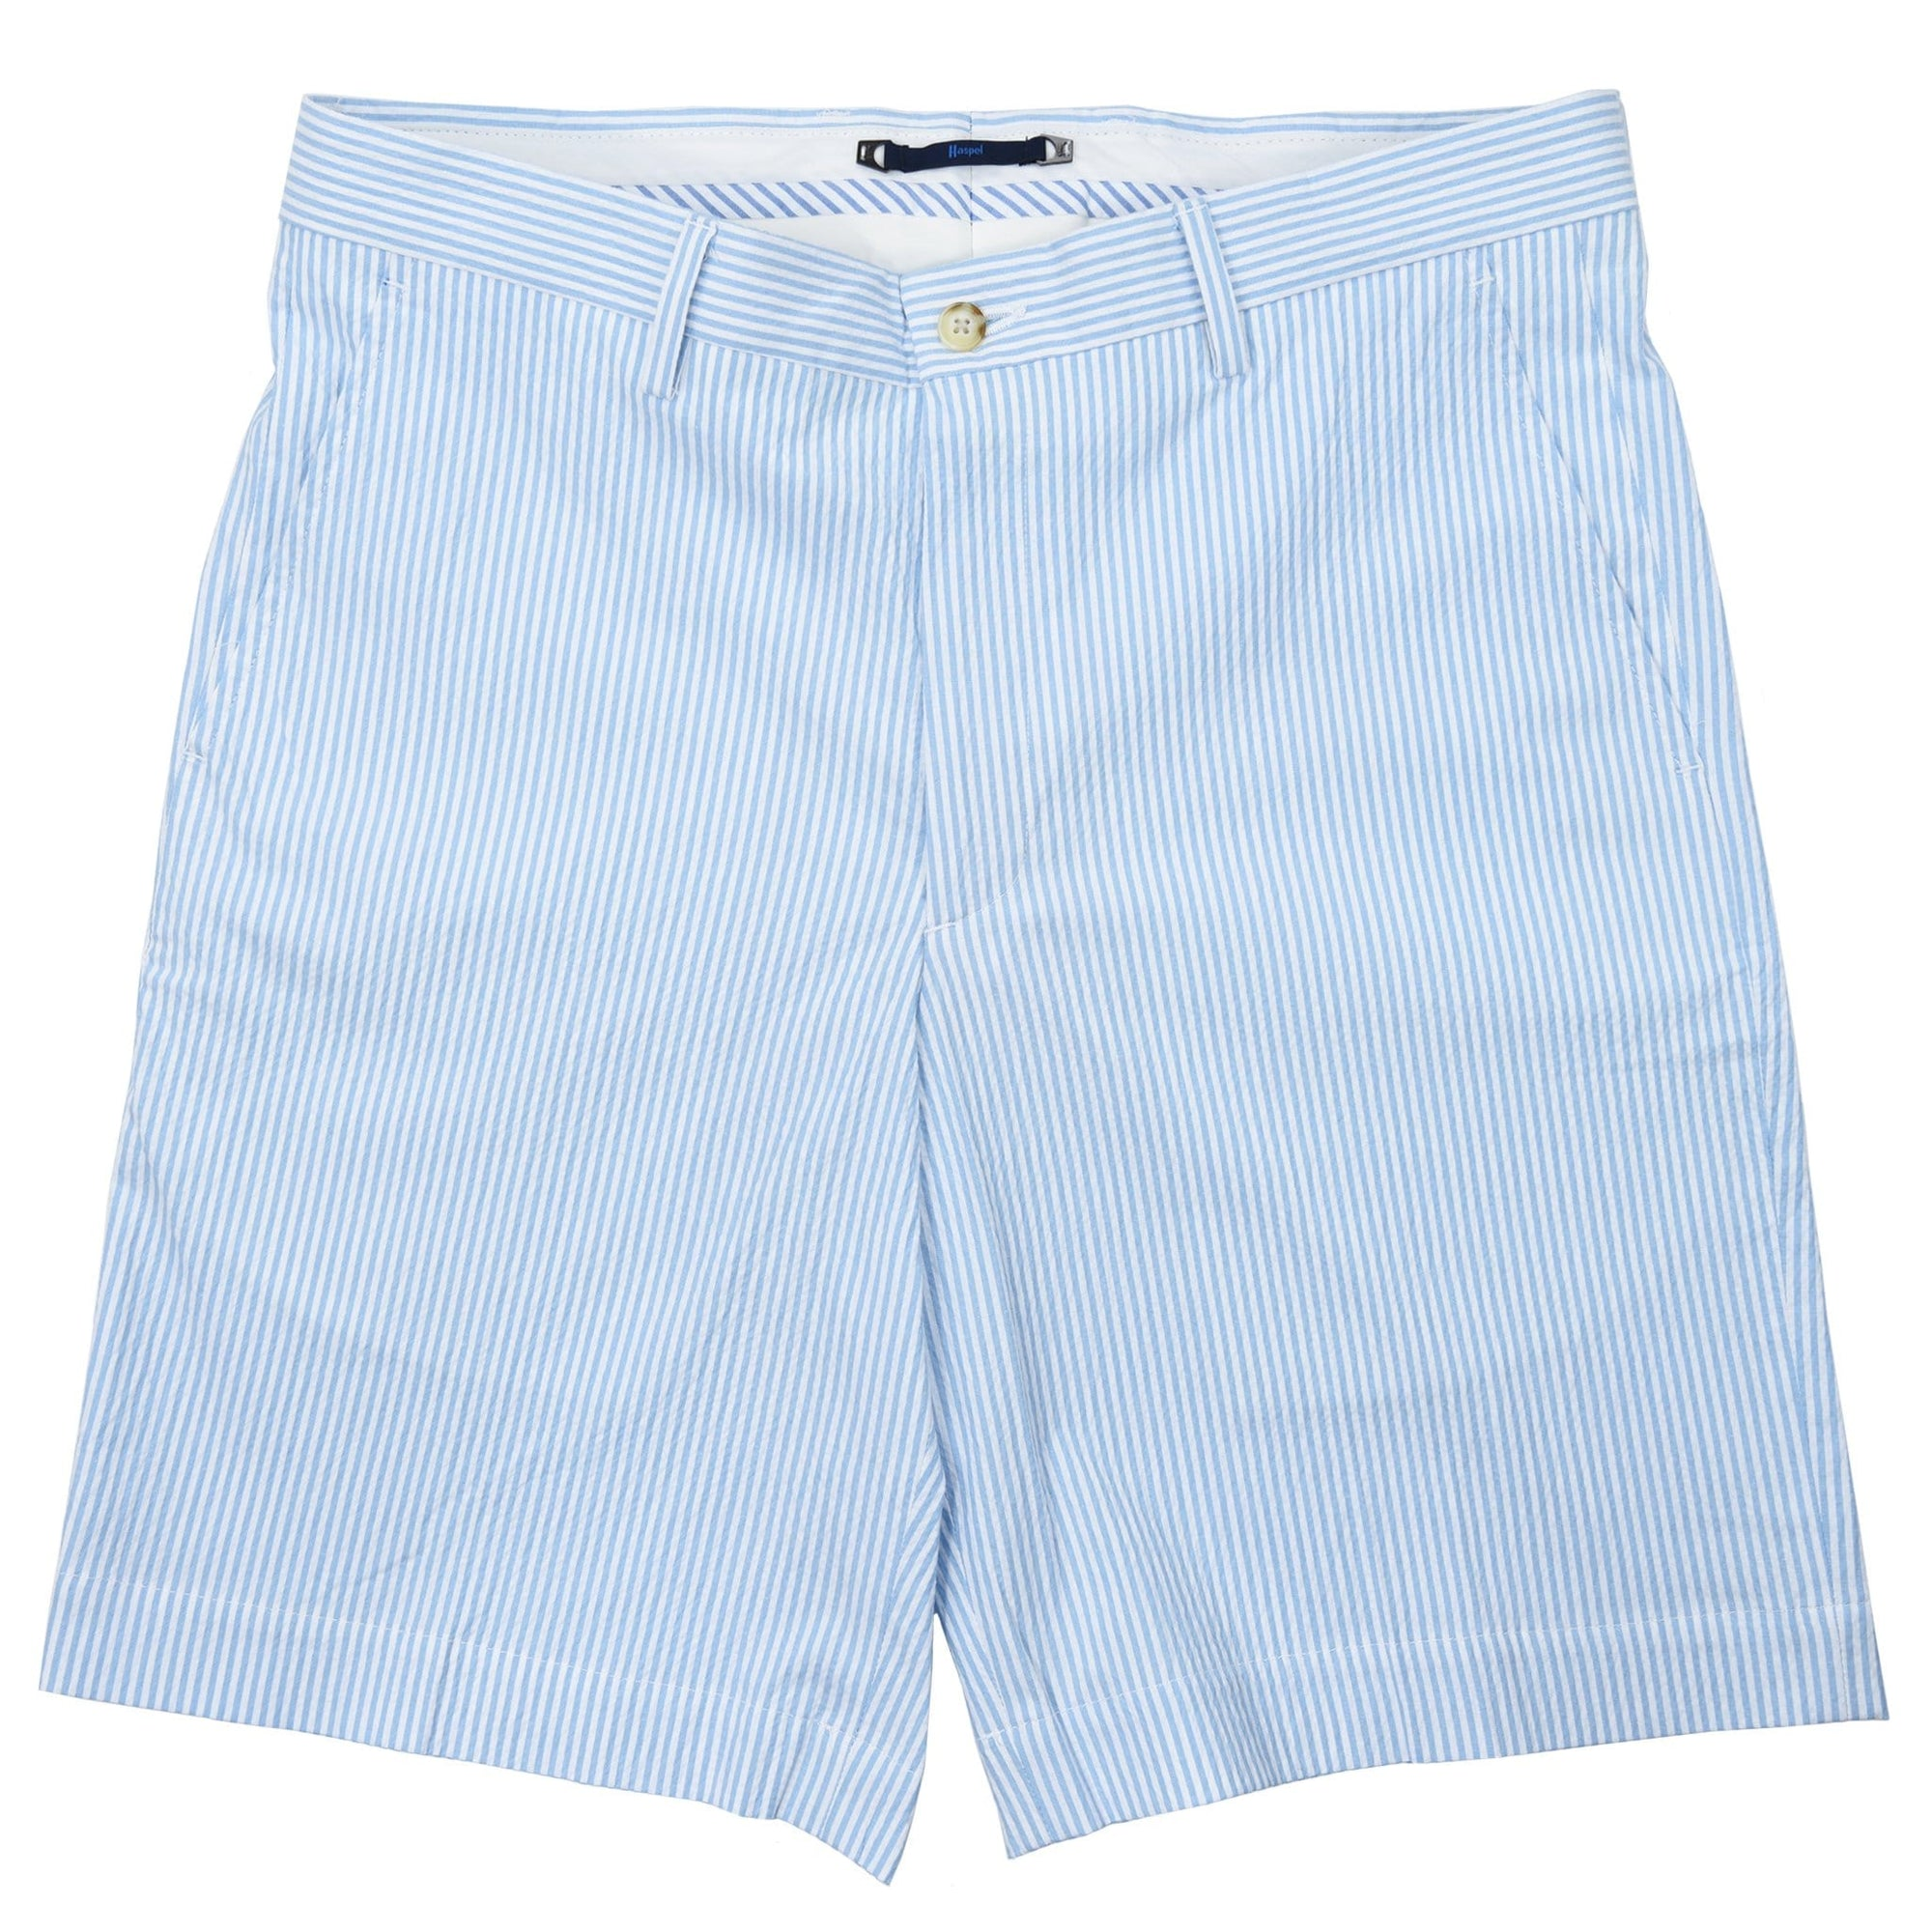 Felicity Light Blue Seersucker Short - Haspel Clothing